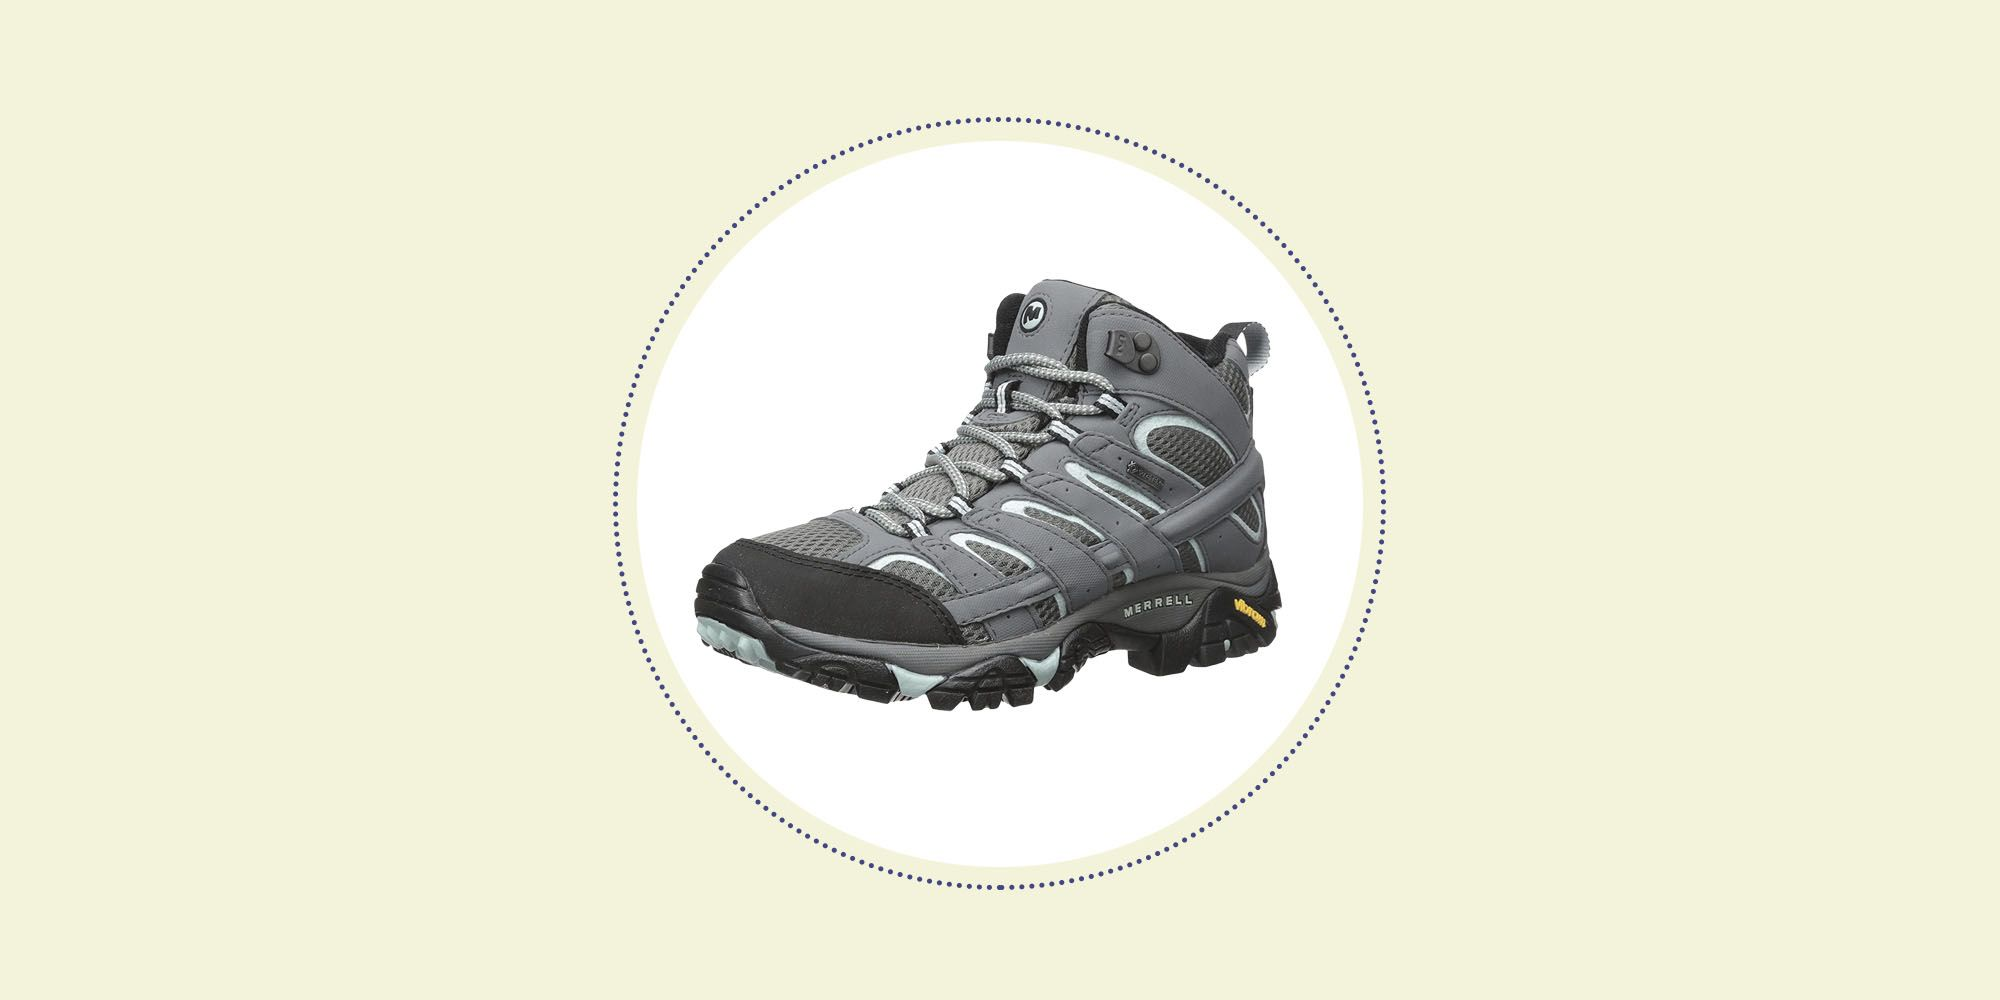 off Merrell walking shoes in the Amazon